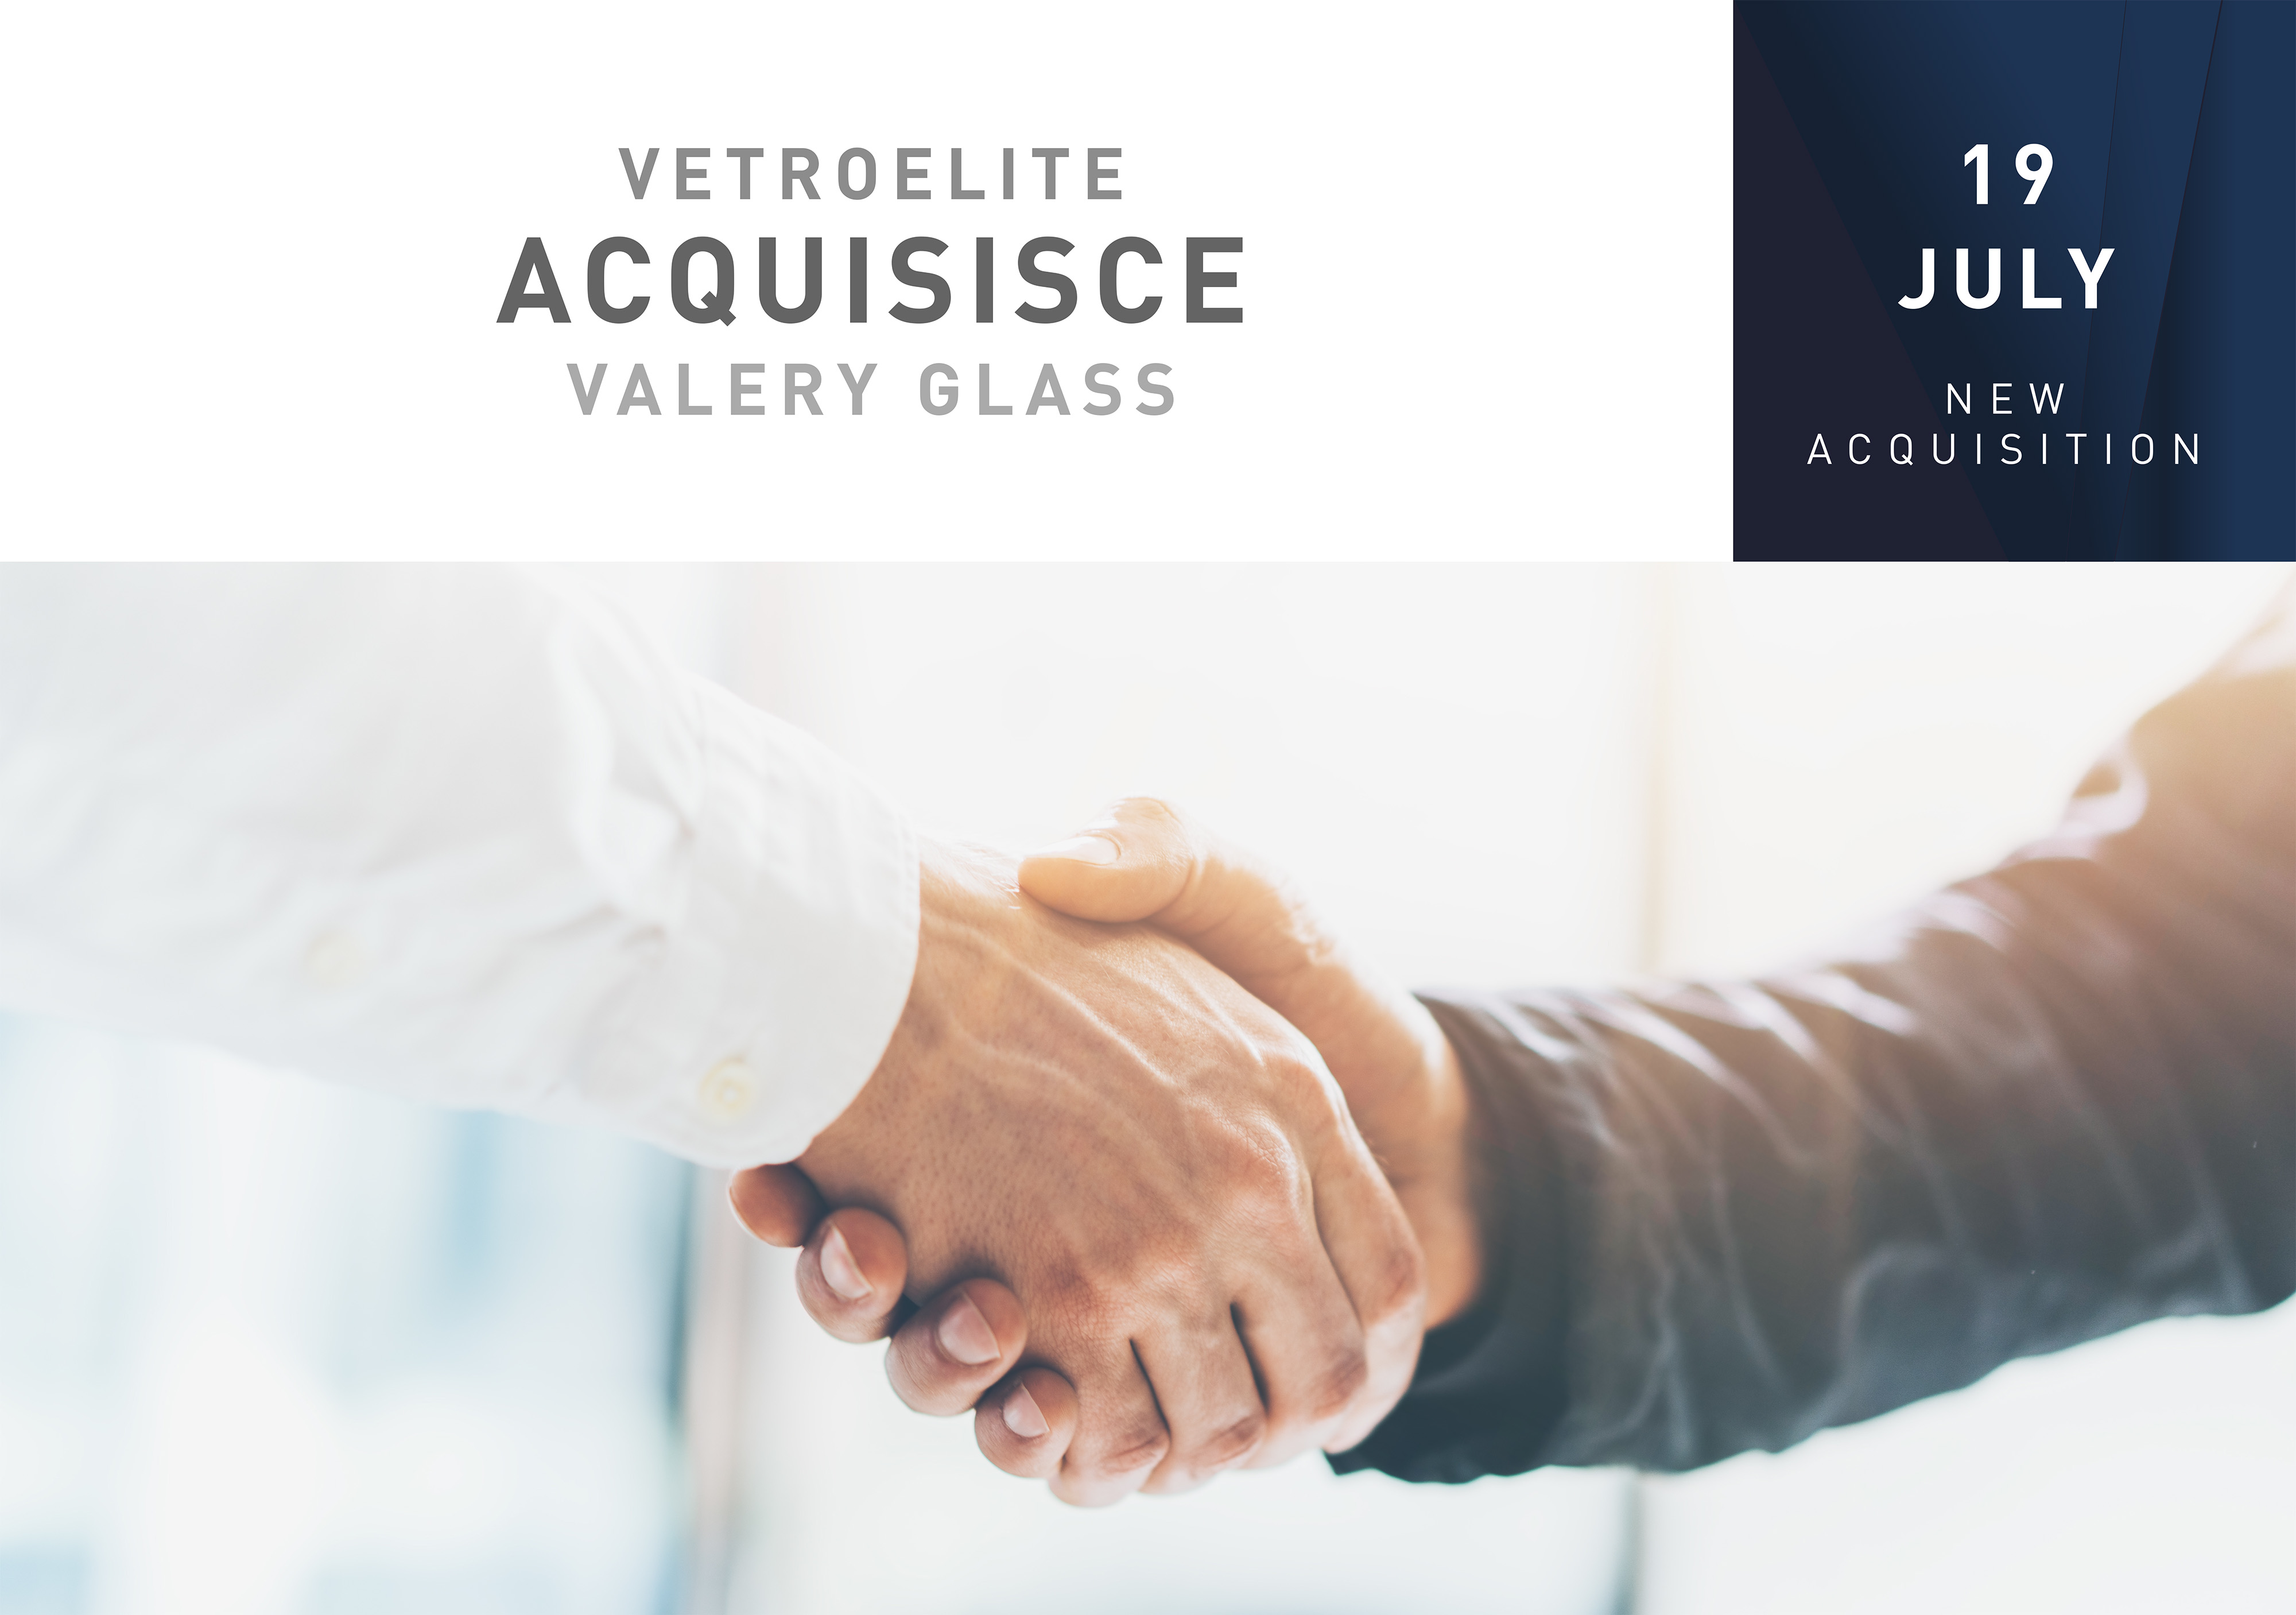 Vetroelite announced the acquisition of Valery Glass - Vetroelite